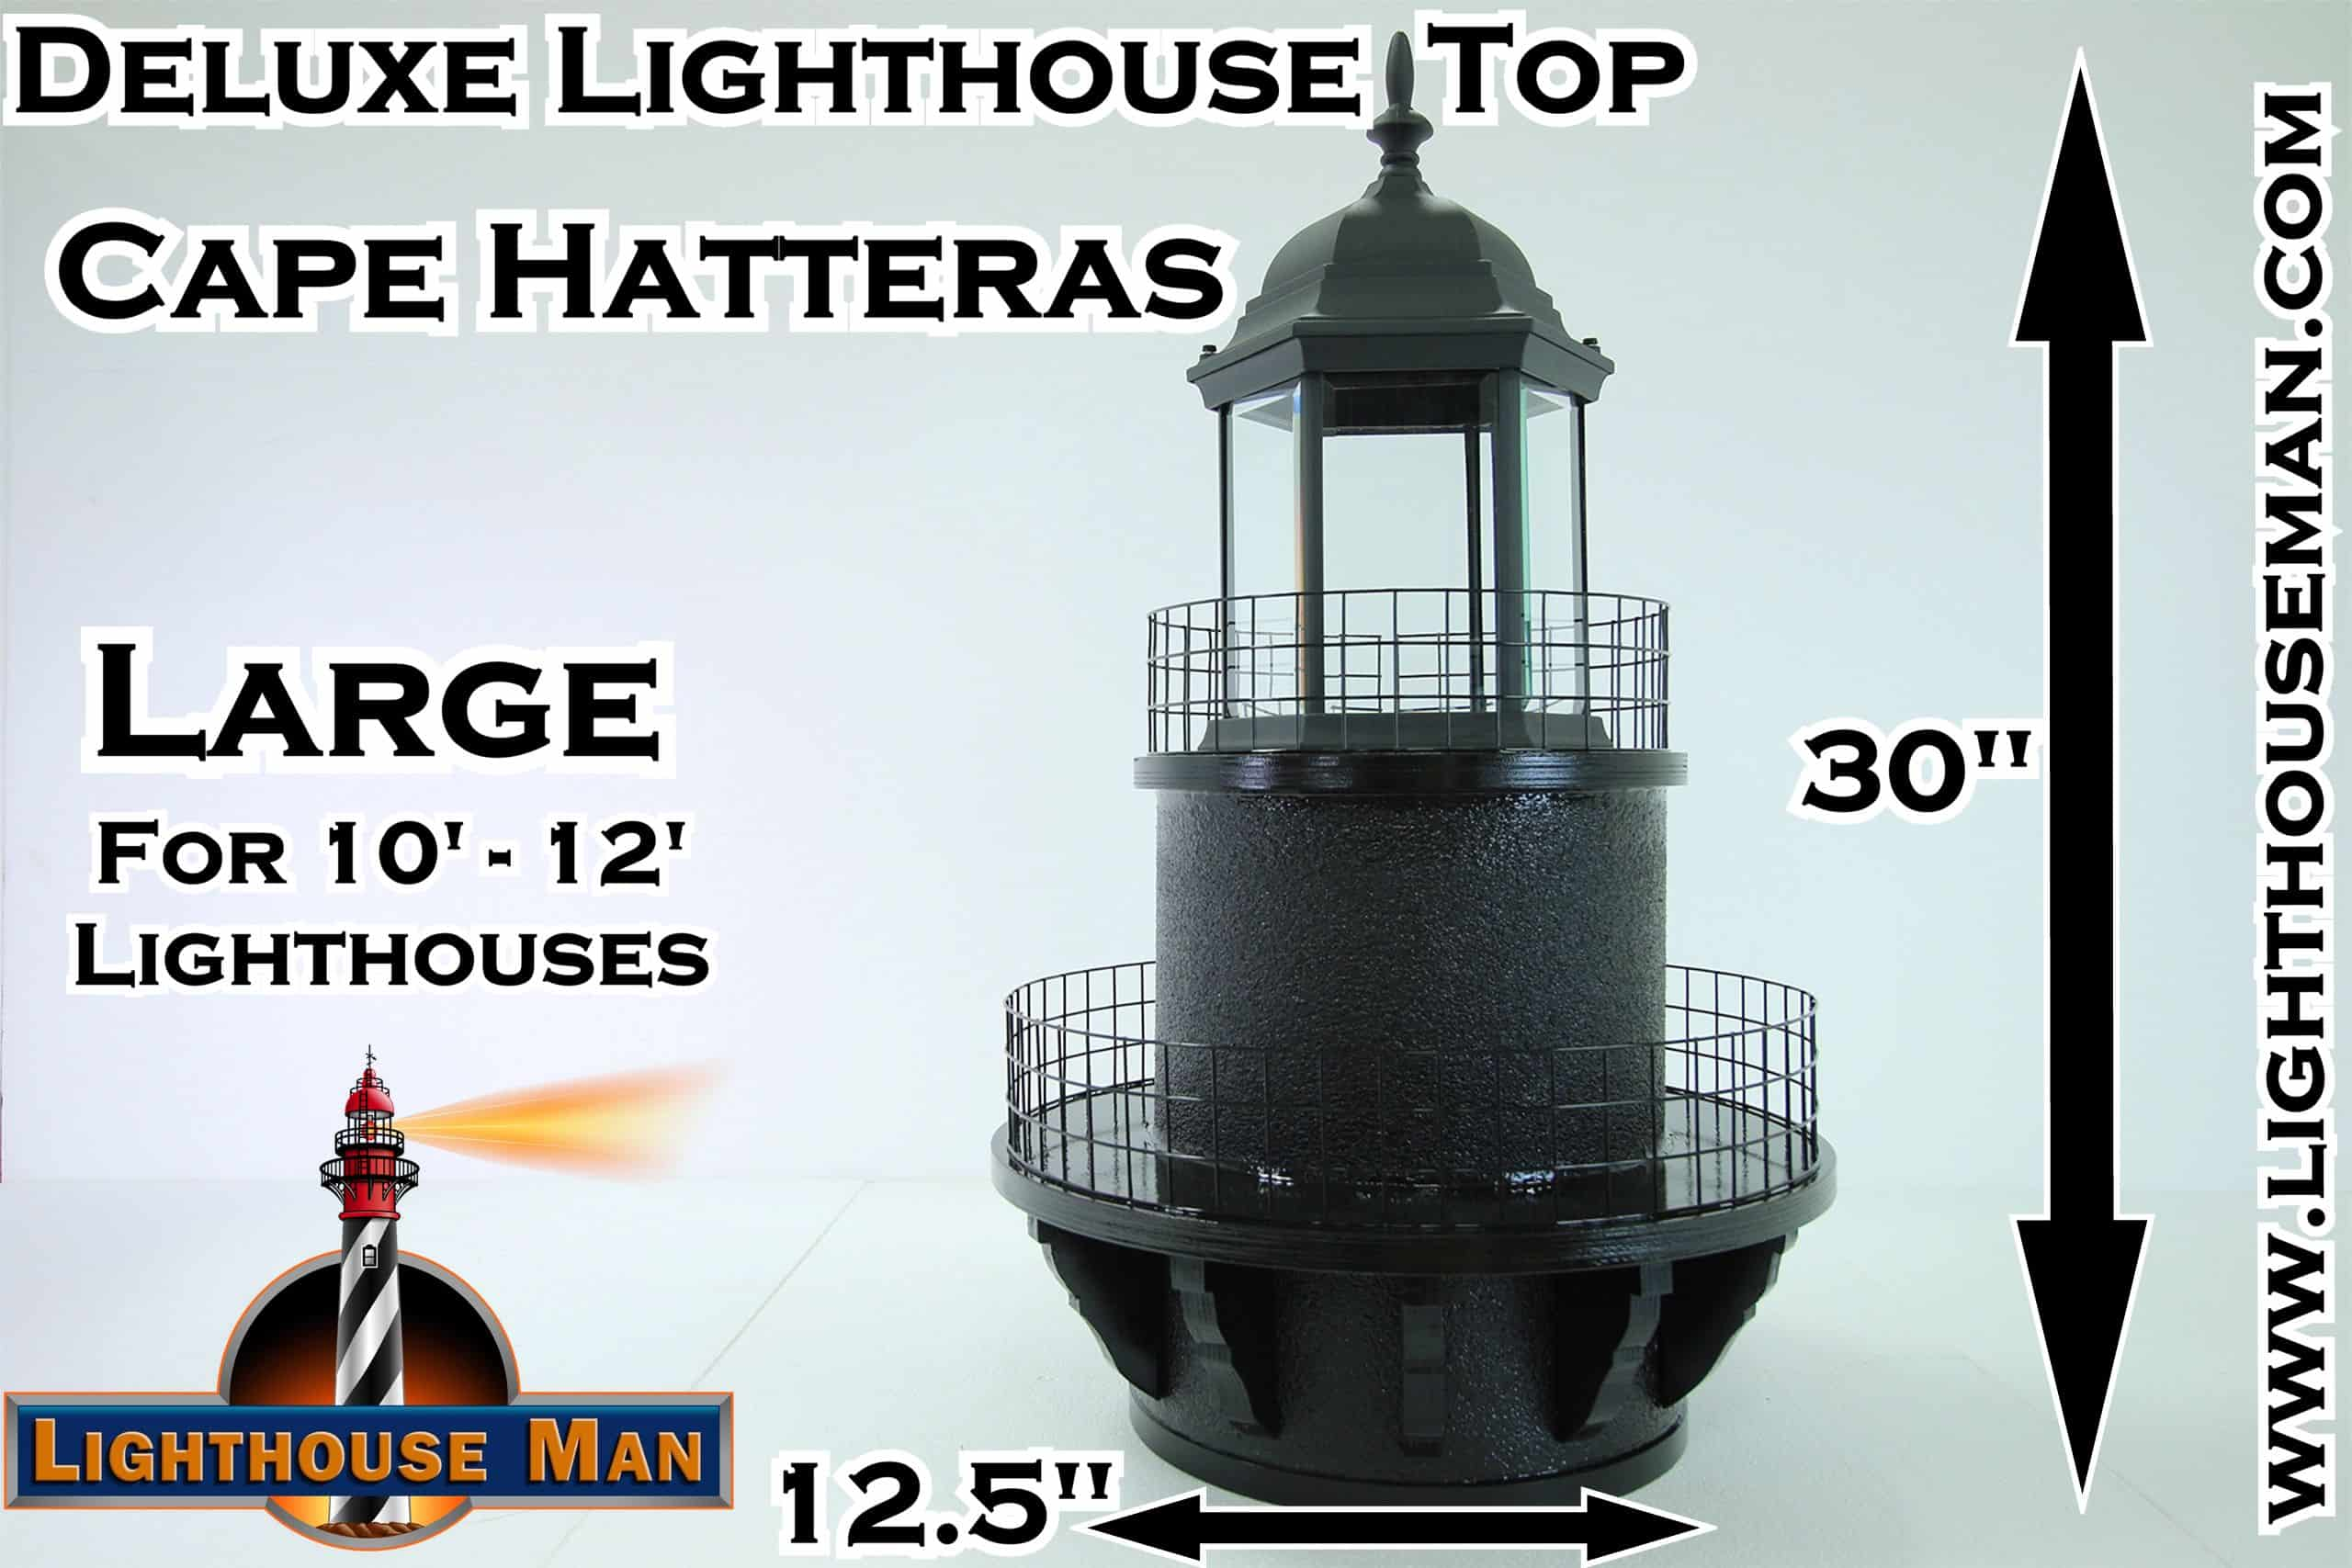 Deluxe Large Cape Hatteras Lighthouse Top